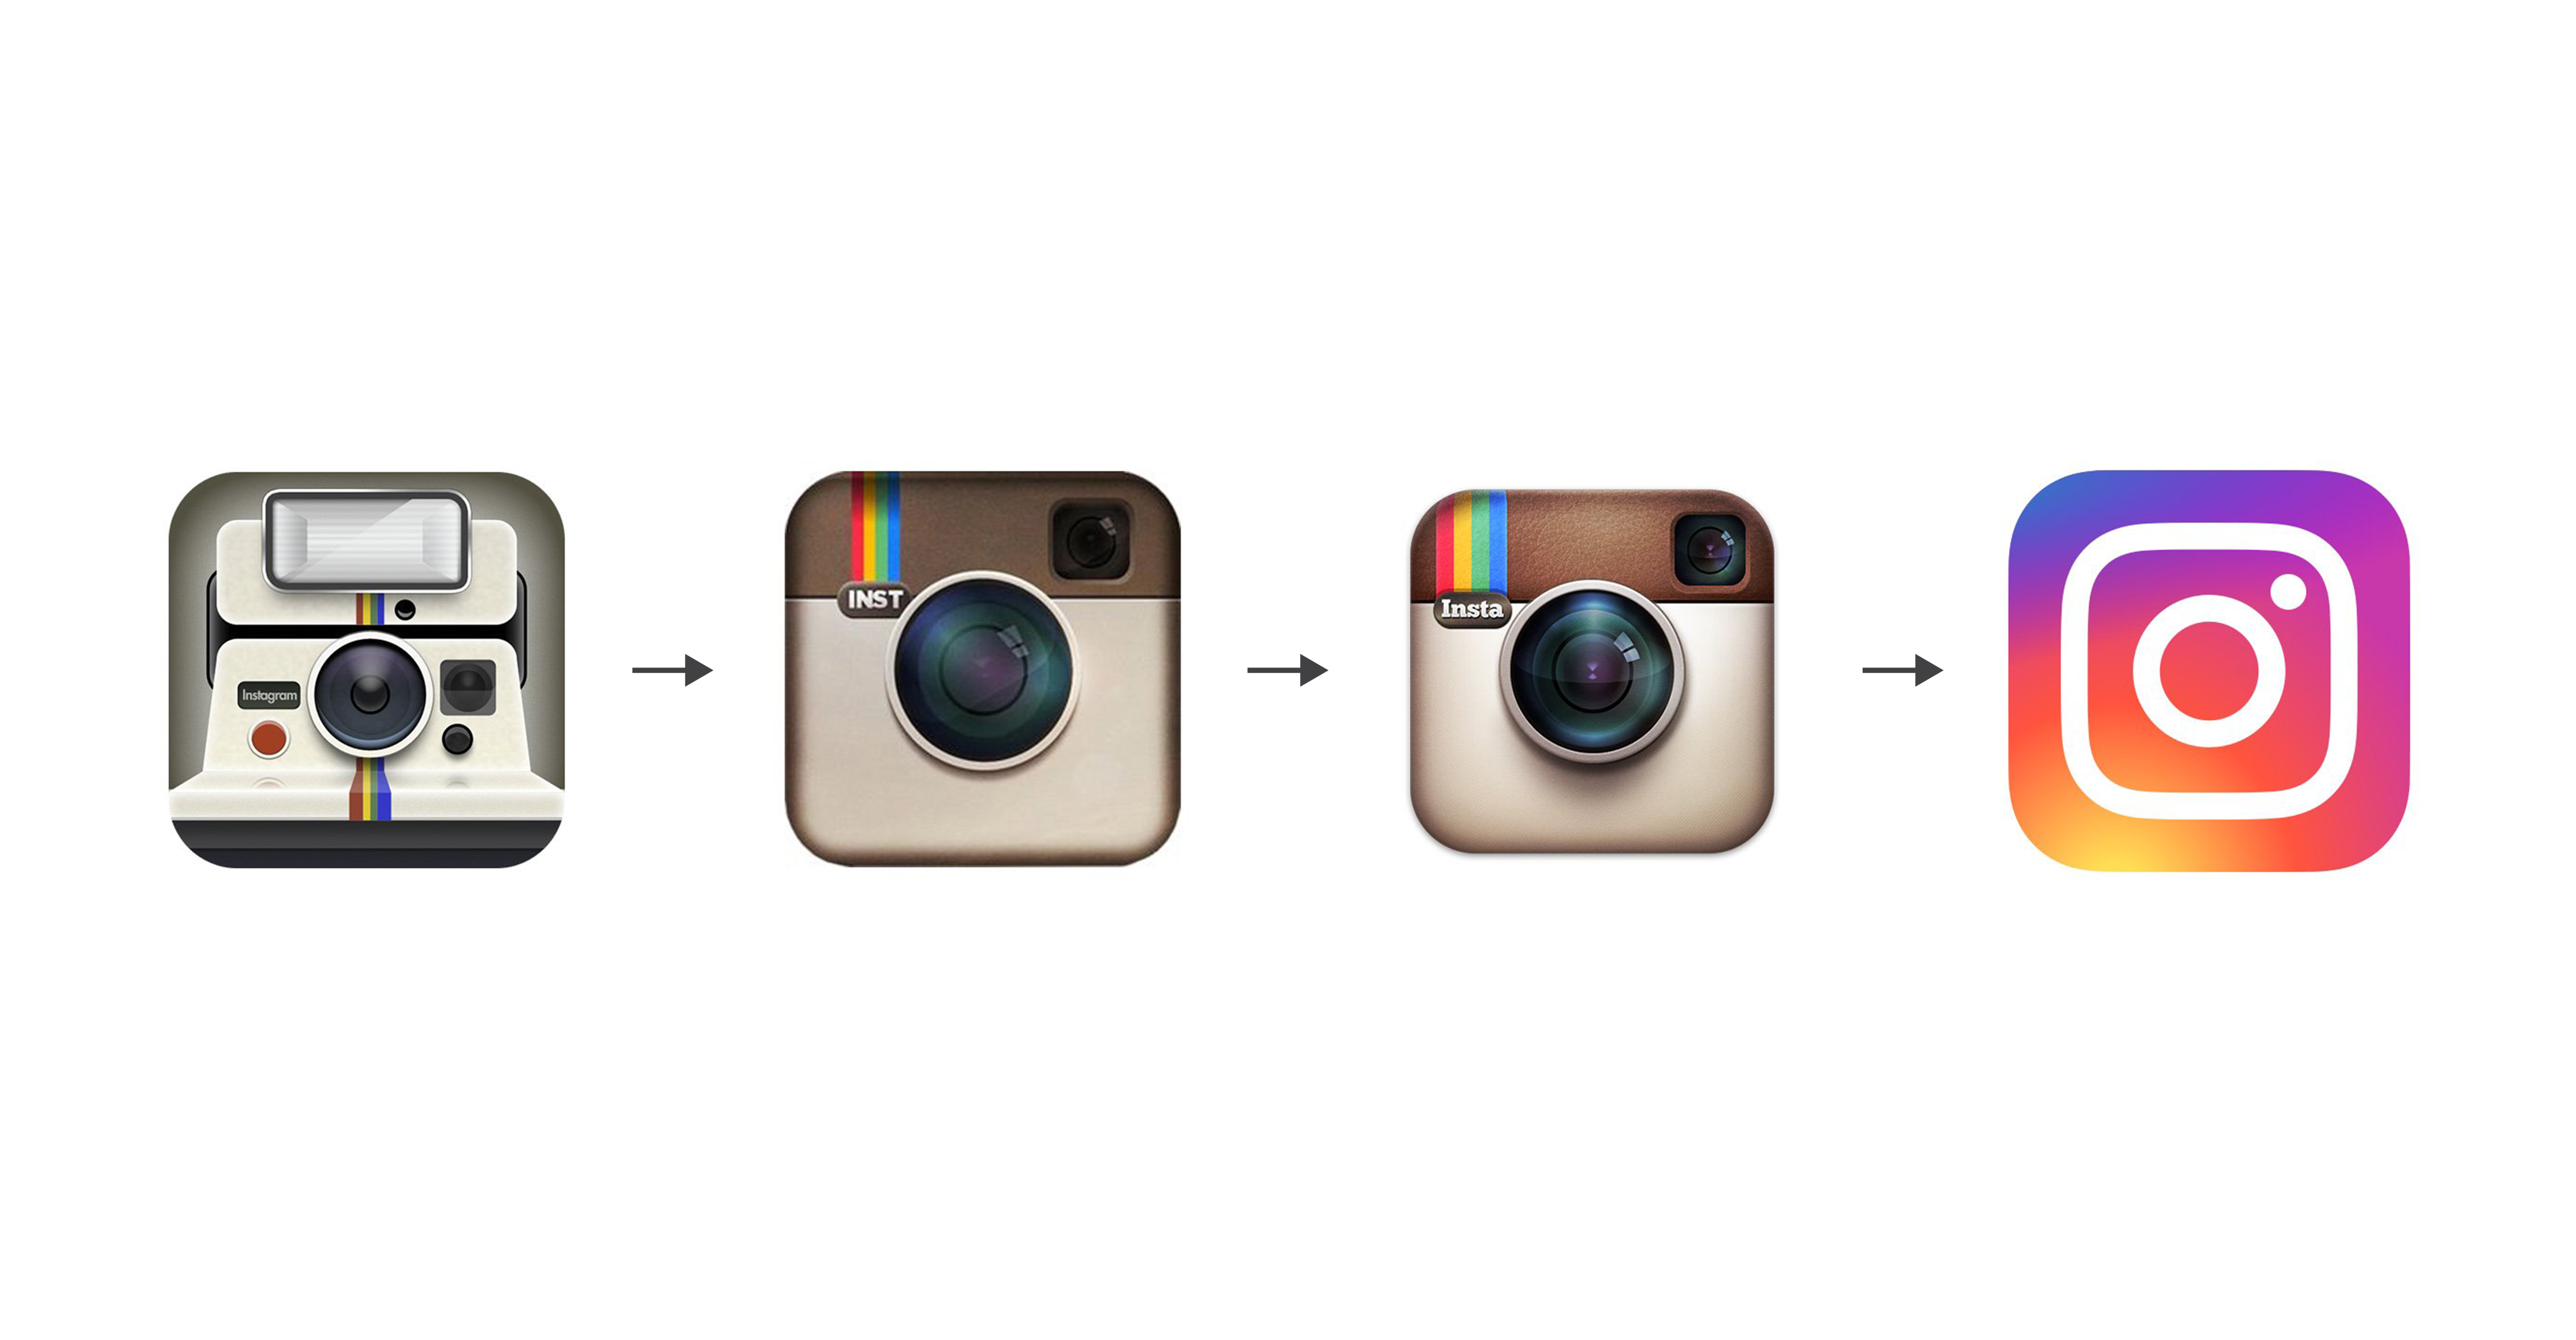 A picture showing the four changes to the instagram logo